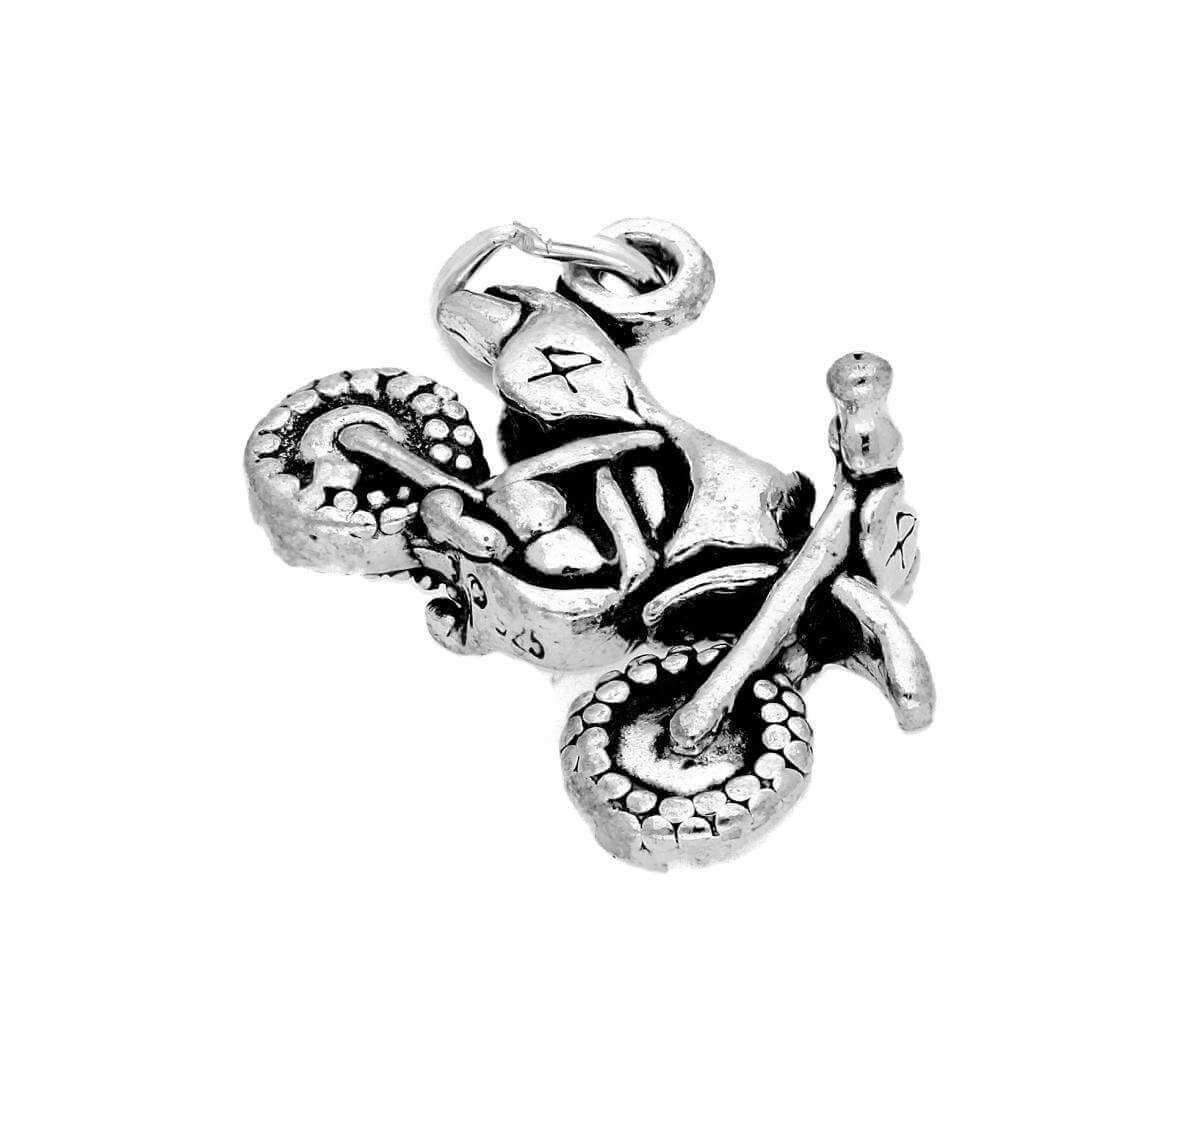 Sterling Silver Dirt Bike Charm